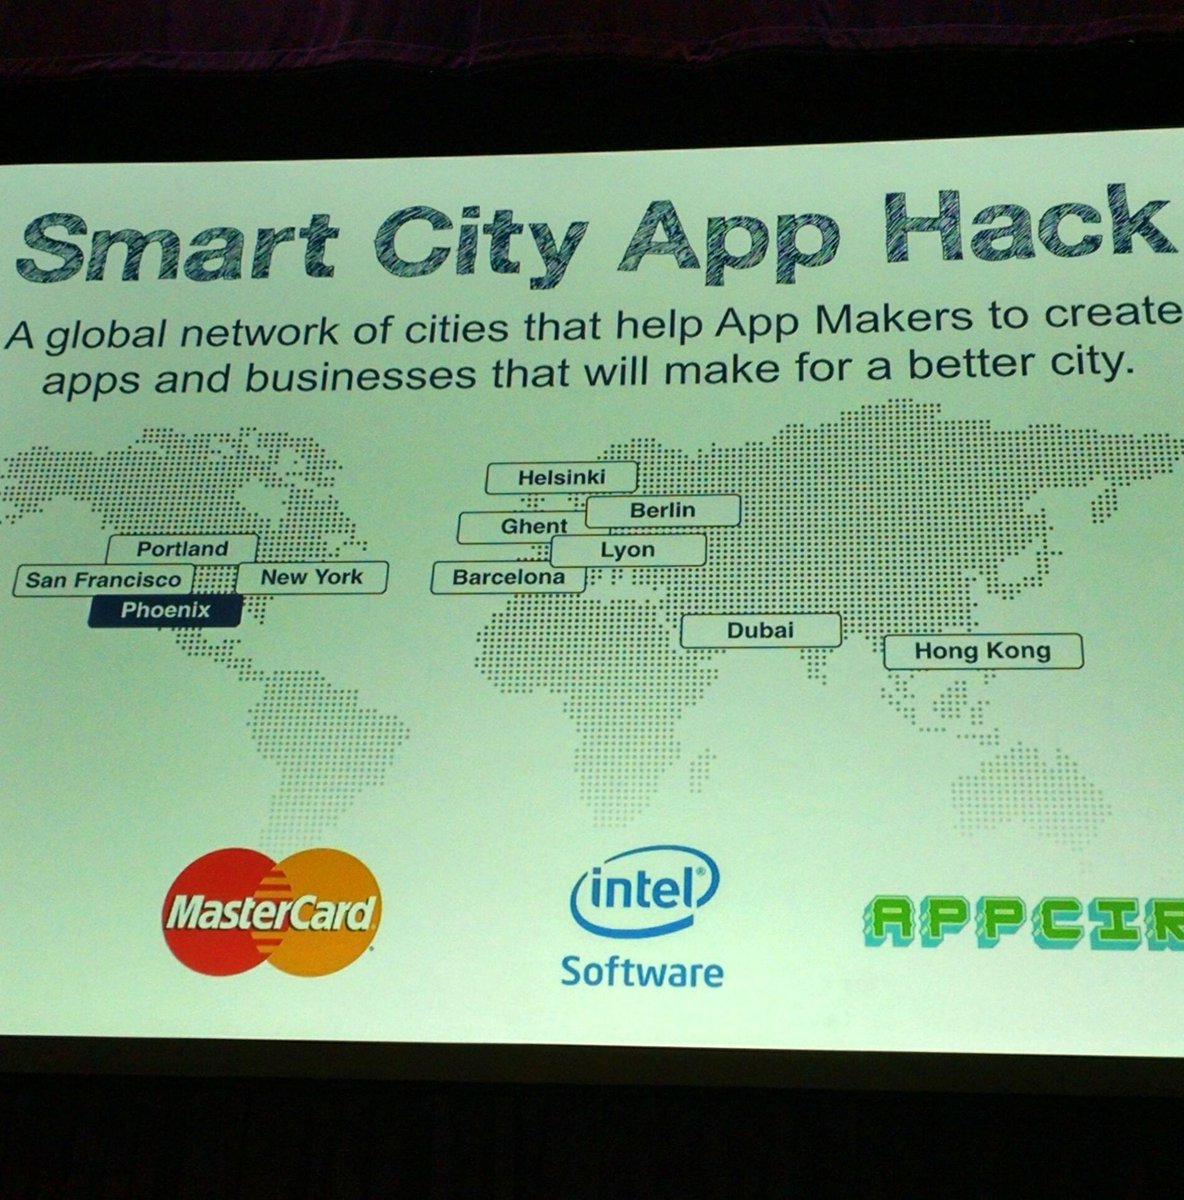 Phoenix is one of 4 US cities participating in the global Smart City App Hack. #Yesphx indeed! #SCAH_PHOENIX https://t.co/H1VAQzQ7Jm